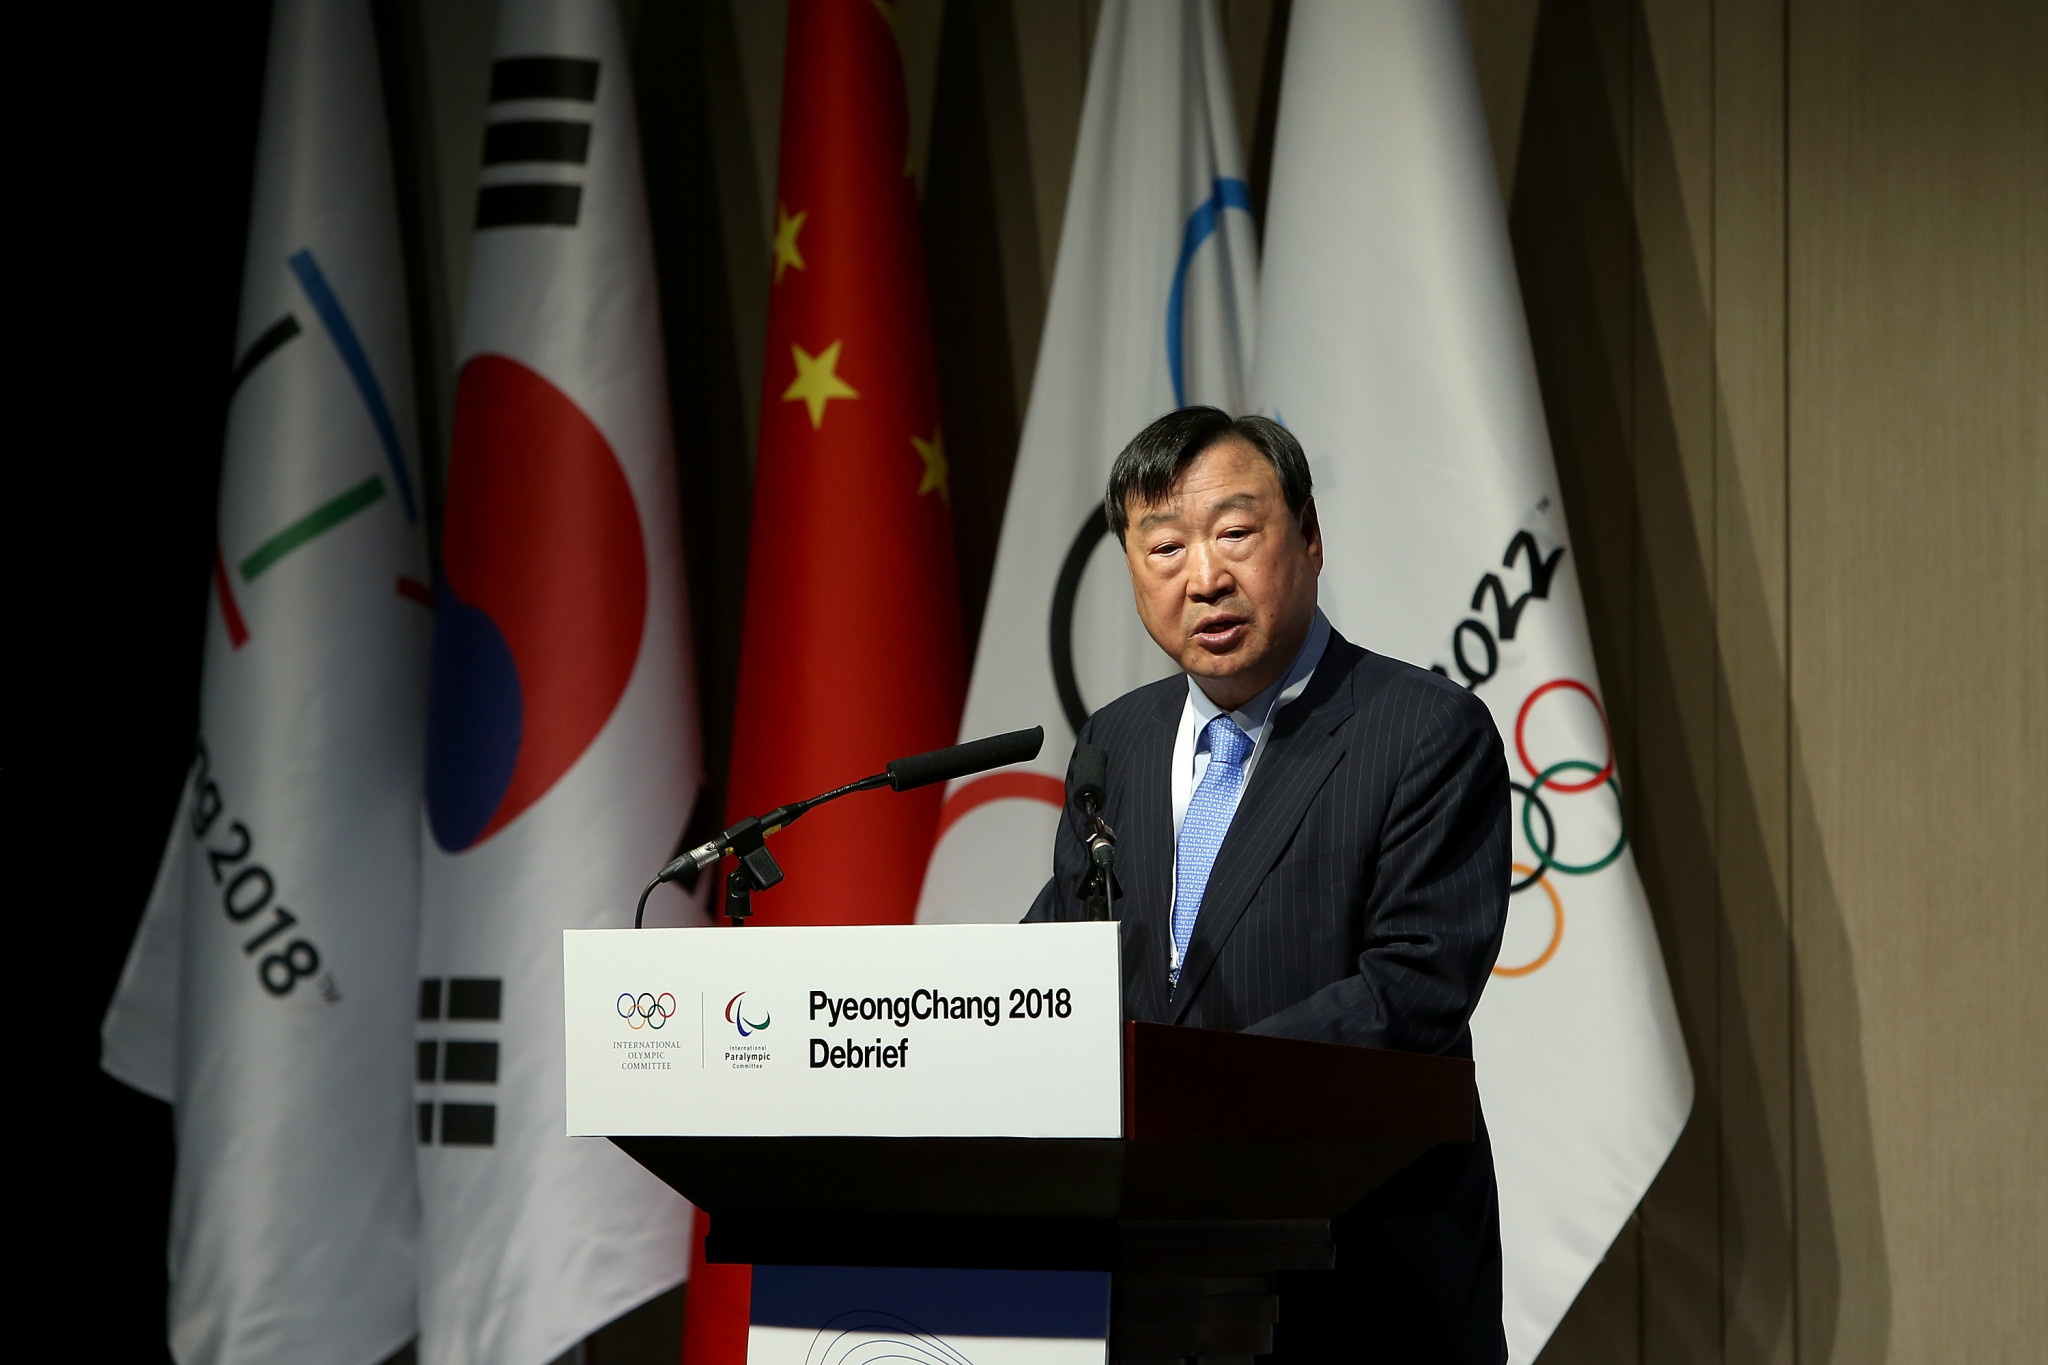 Pyeongchang 2018 President claims multi-million dollar surplus achieved for Winter Olympics